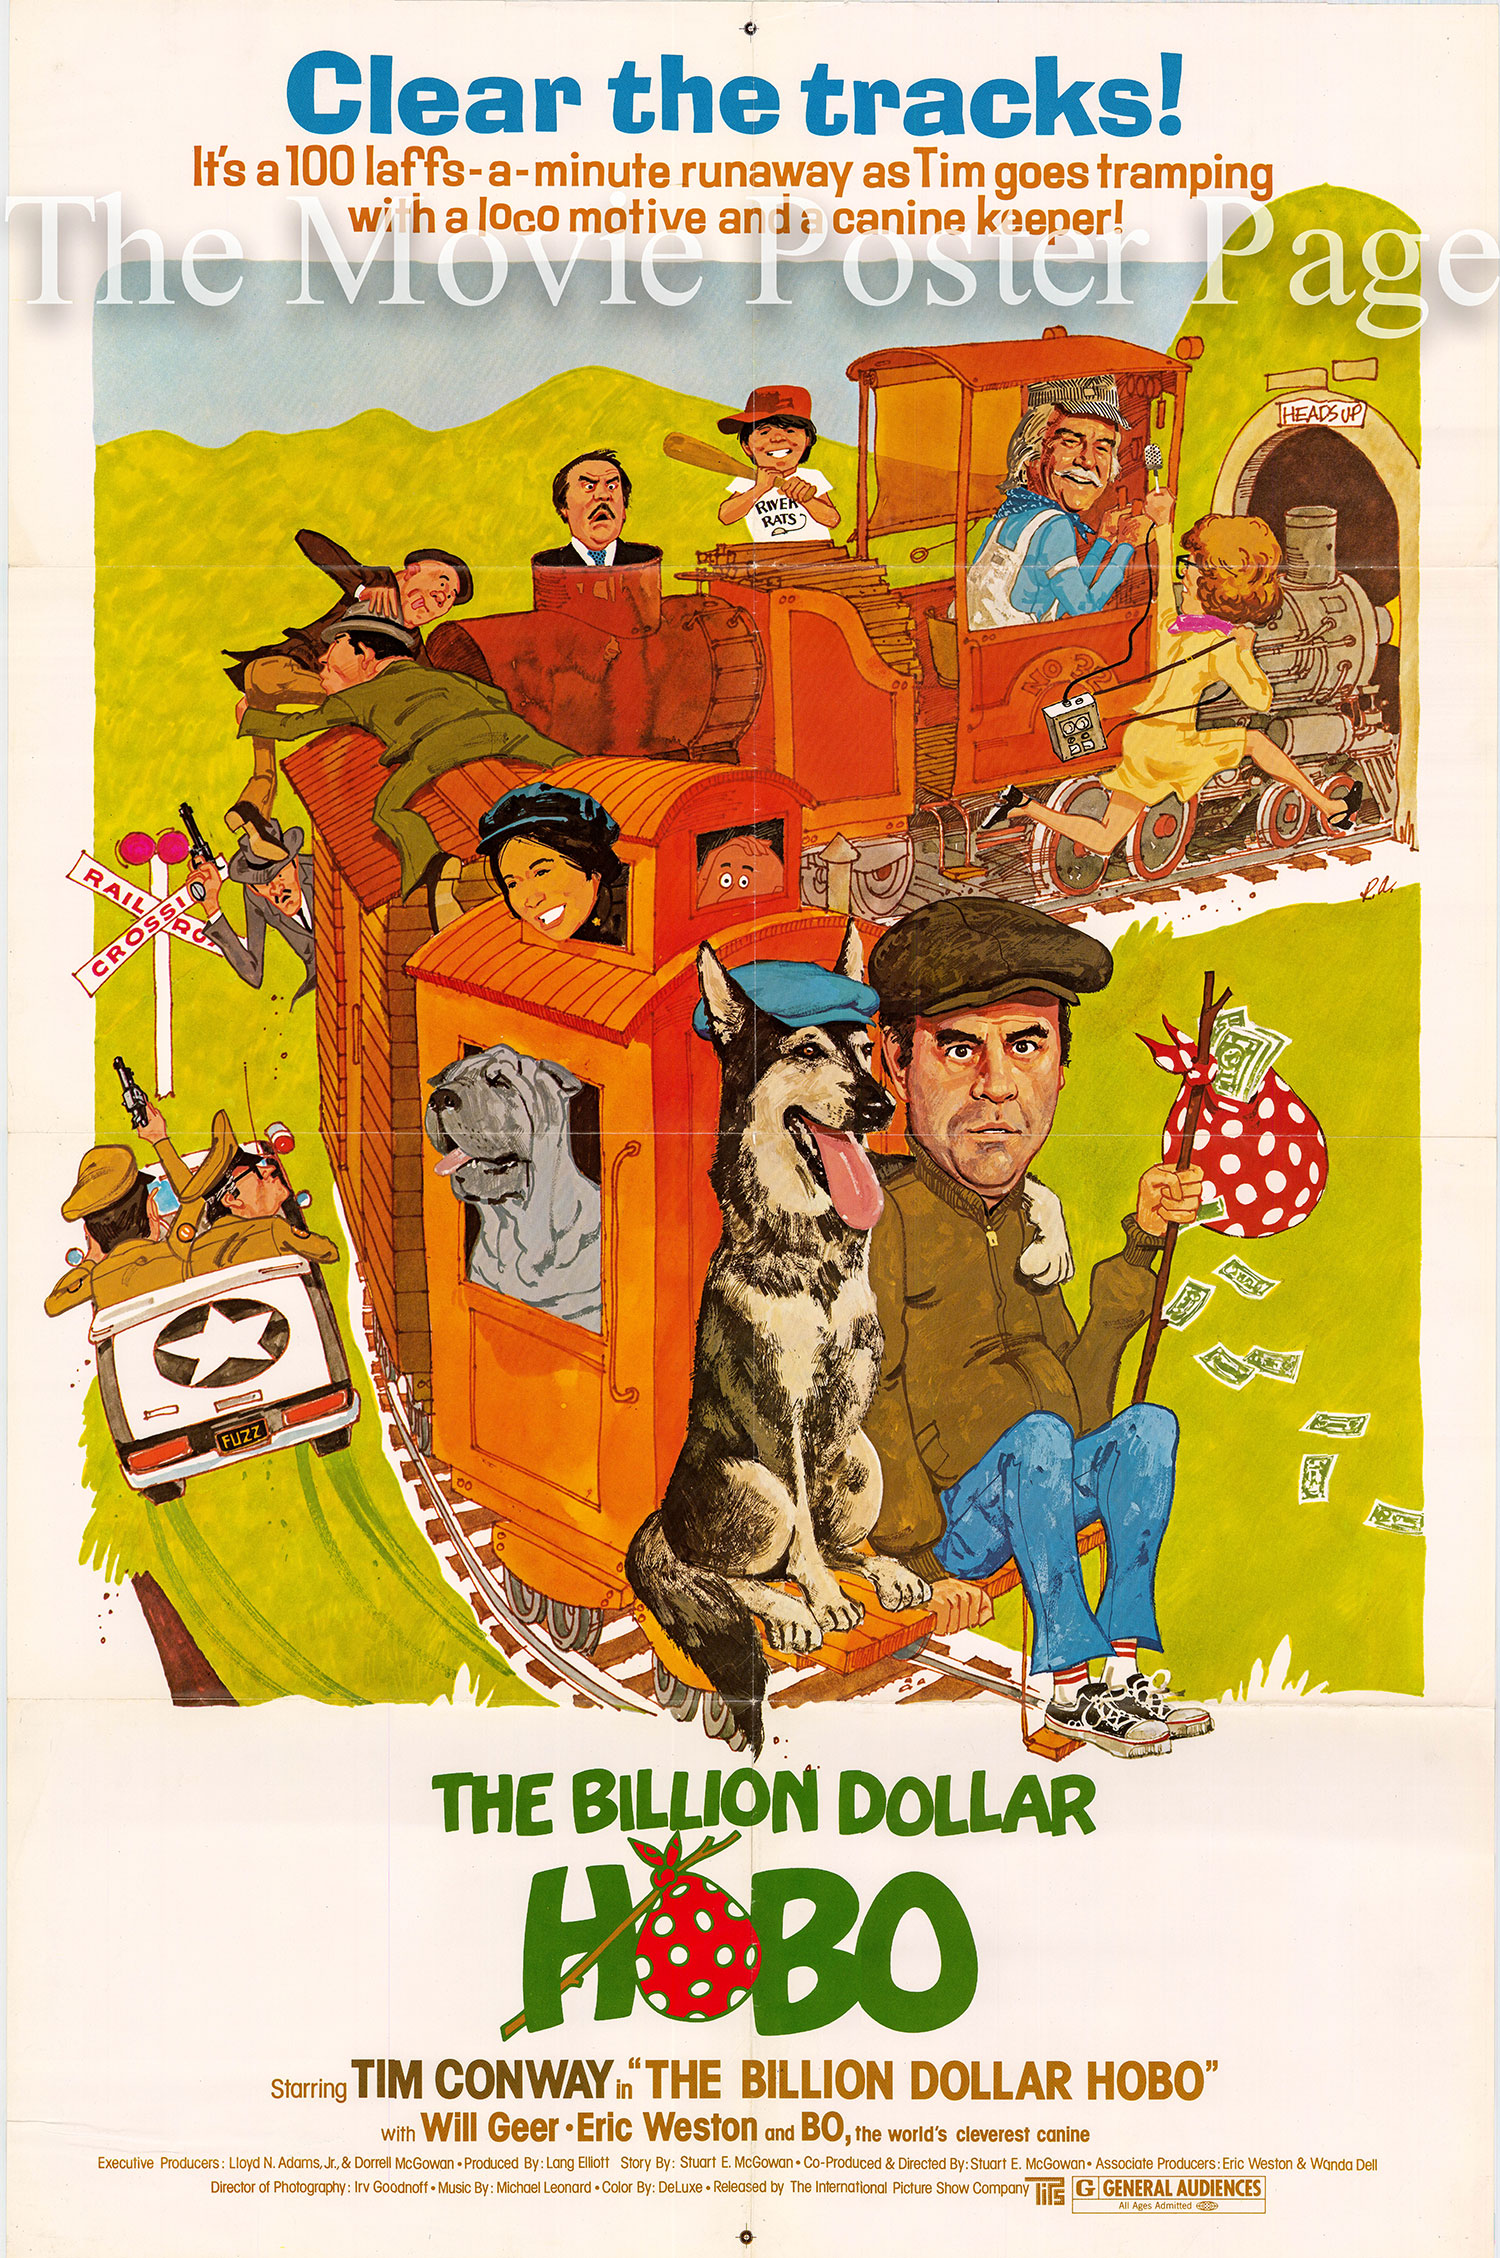 Pictured is a US promotional poster for the 1977 Stuart E. McGowan film The Billion Dollar Hobo starring Tim Conway.